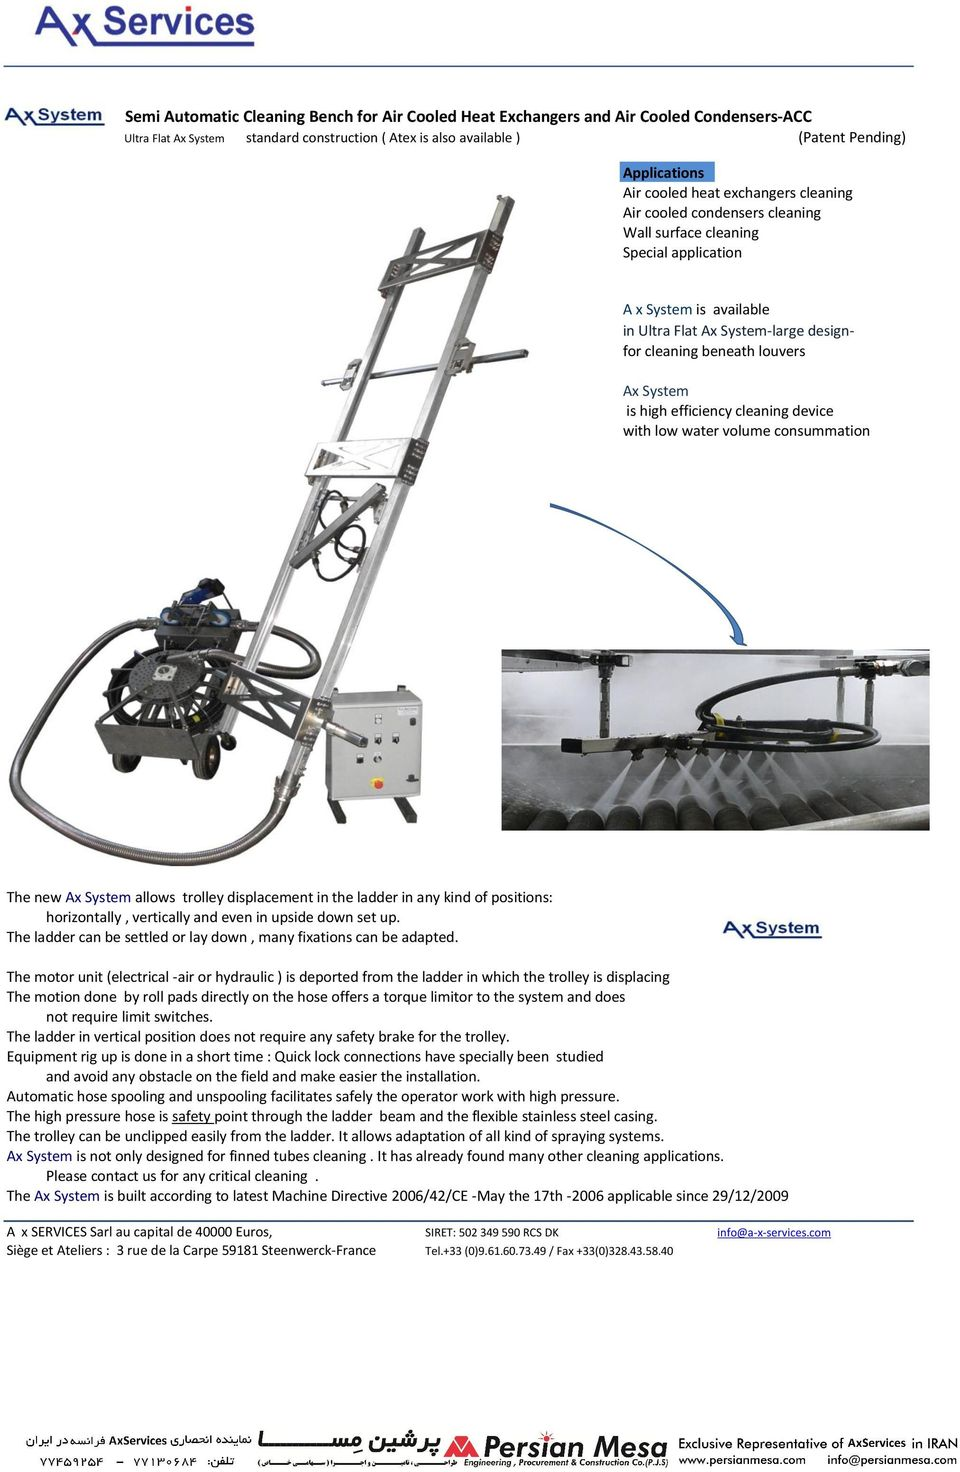 System is high efficiency cleaning device with low water volume consummation The new Ax System allows trolley displacement in the ladder in any kind of positions: horizontally, vertically and even in